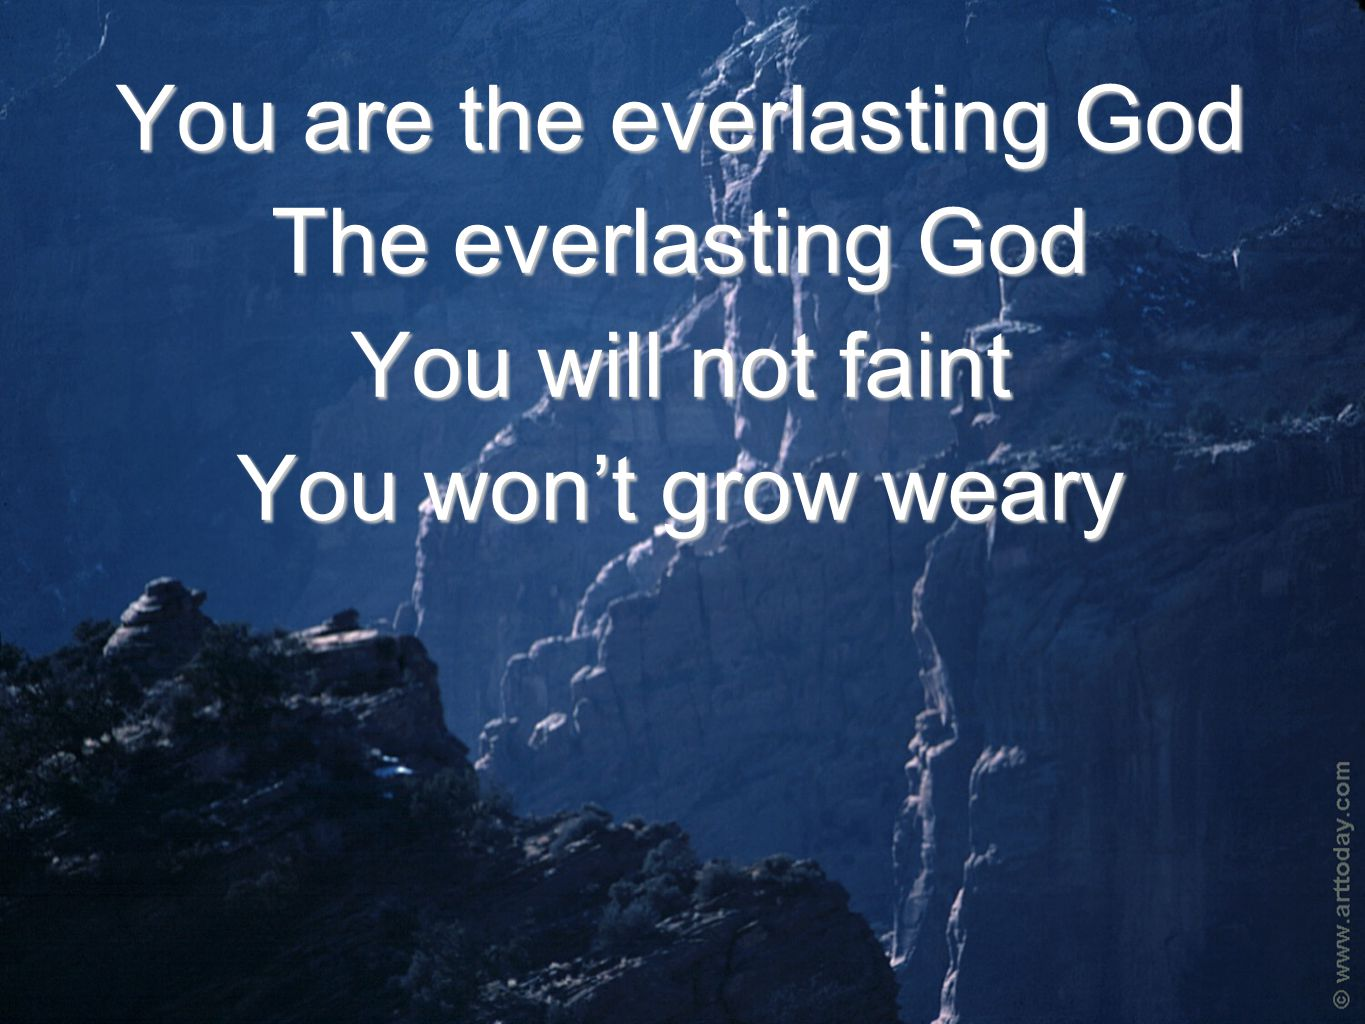 You are the everlasting God The everlasting God You will not faint You won't grow weary